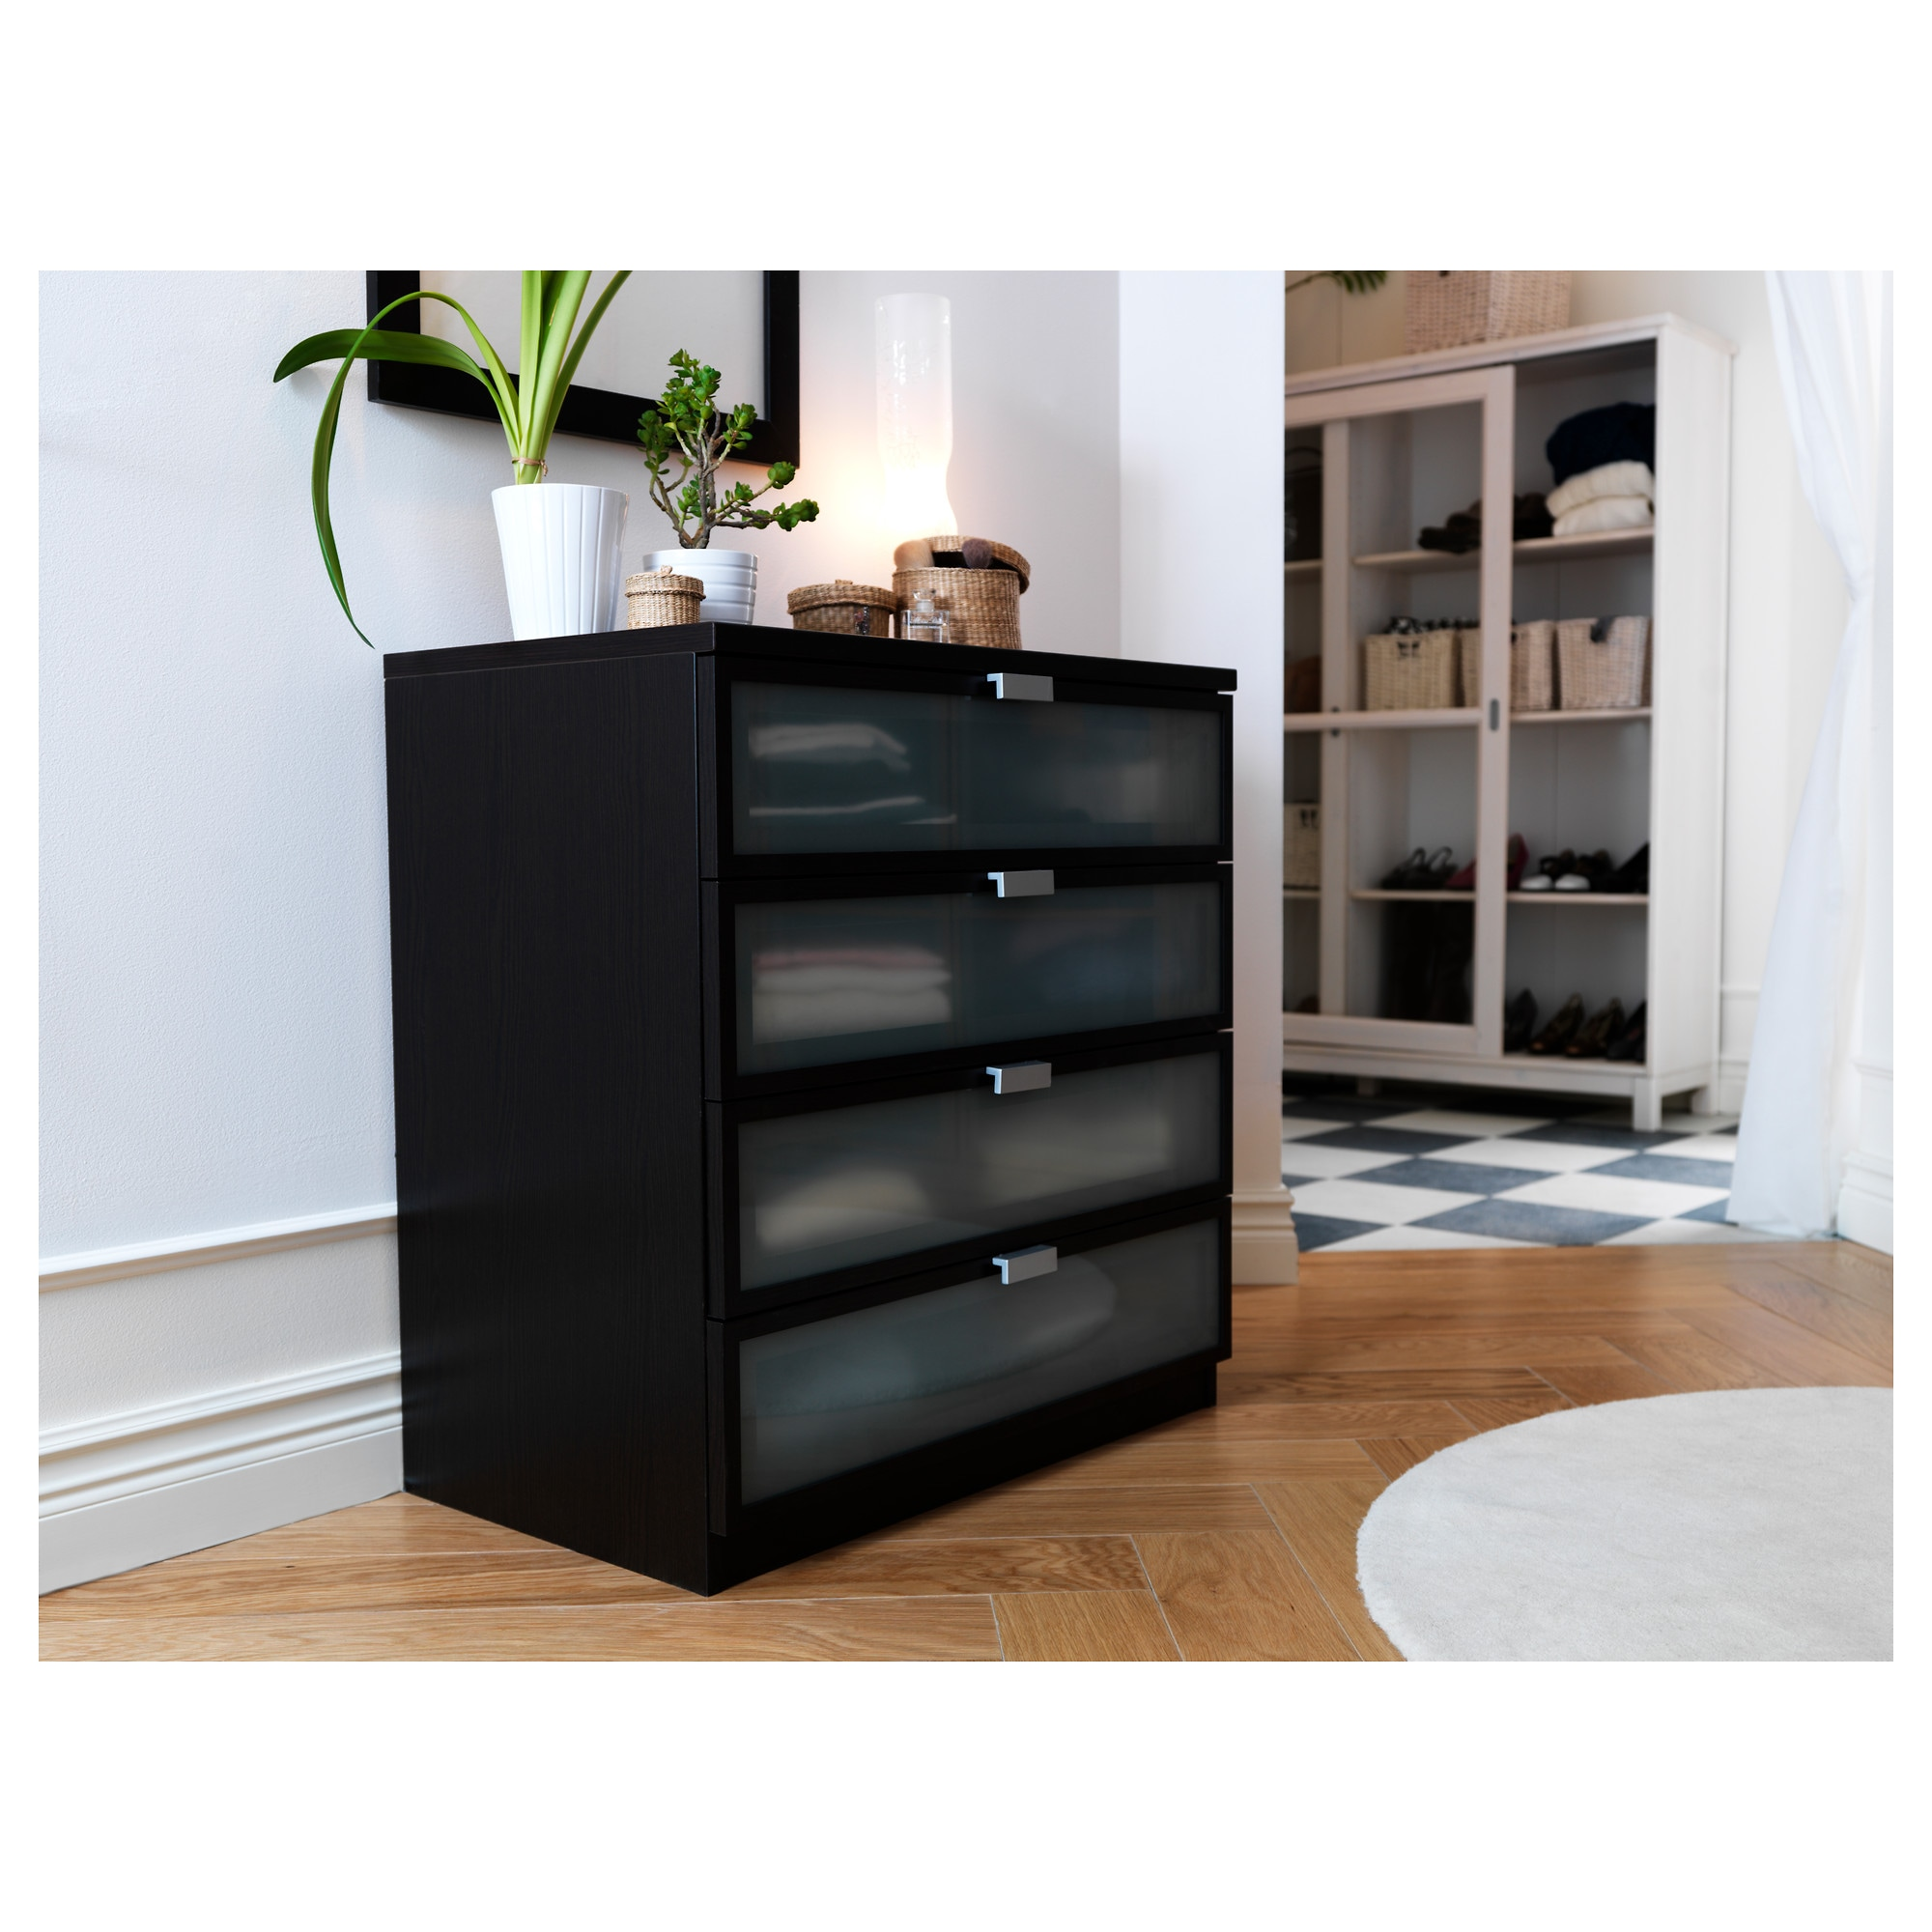 armoire penderie ikea hopen. Black Bedroom Furniture Sets. Home Design Ideas